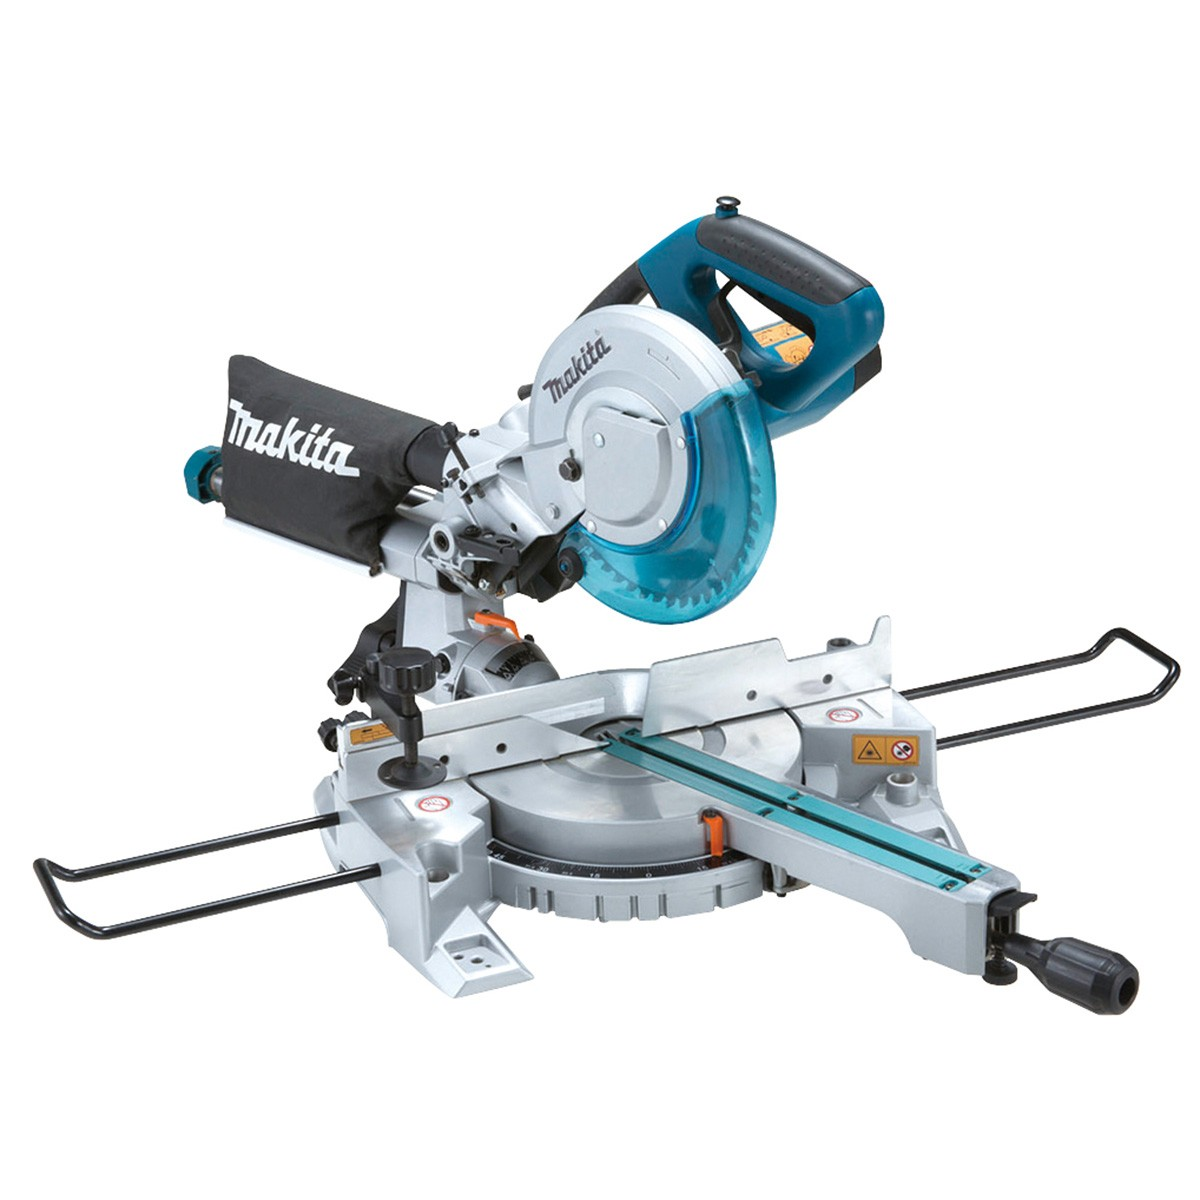 Makita LS0815FL Slide Compound Mitre Saw 216mm 240v